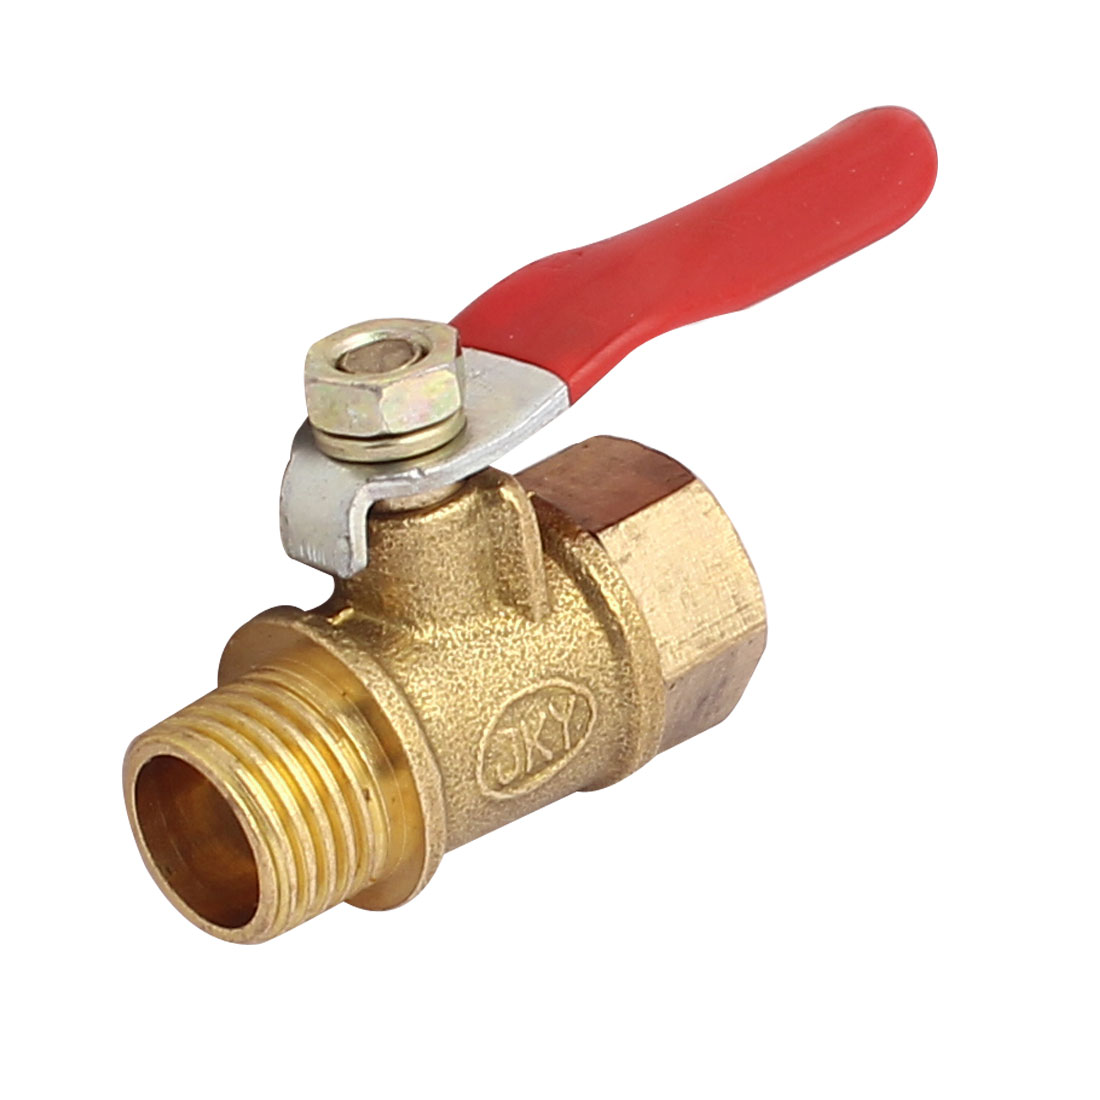 Red Handle Straight Way 13mm 1/4BSP Male Threaded Dia Gas Ball Valve